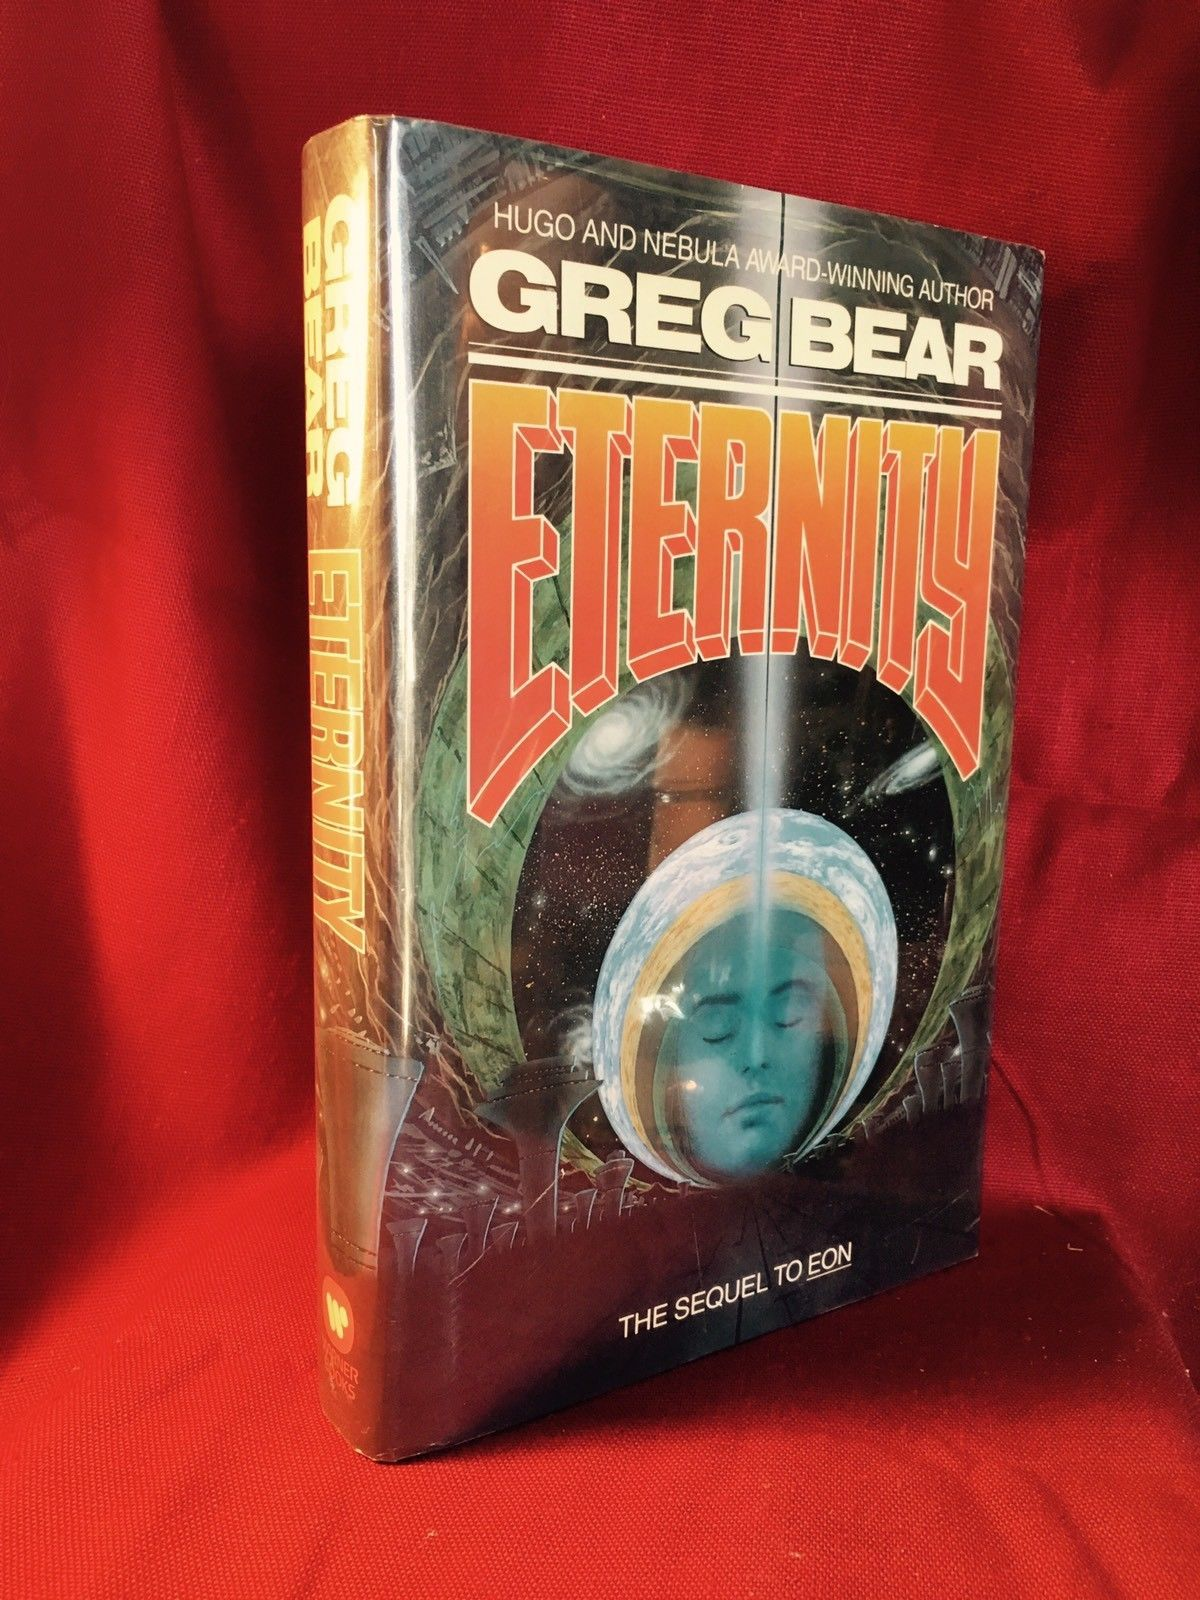 Eternity by Greg Bear